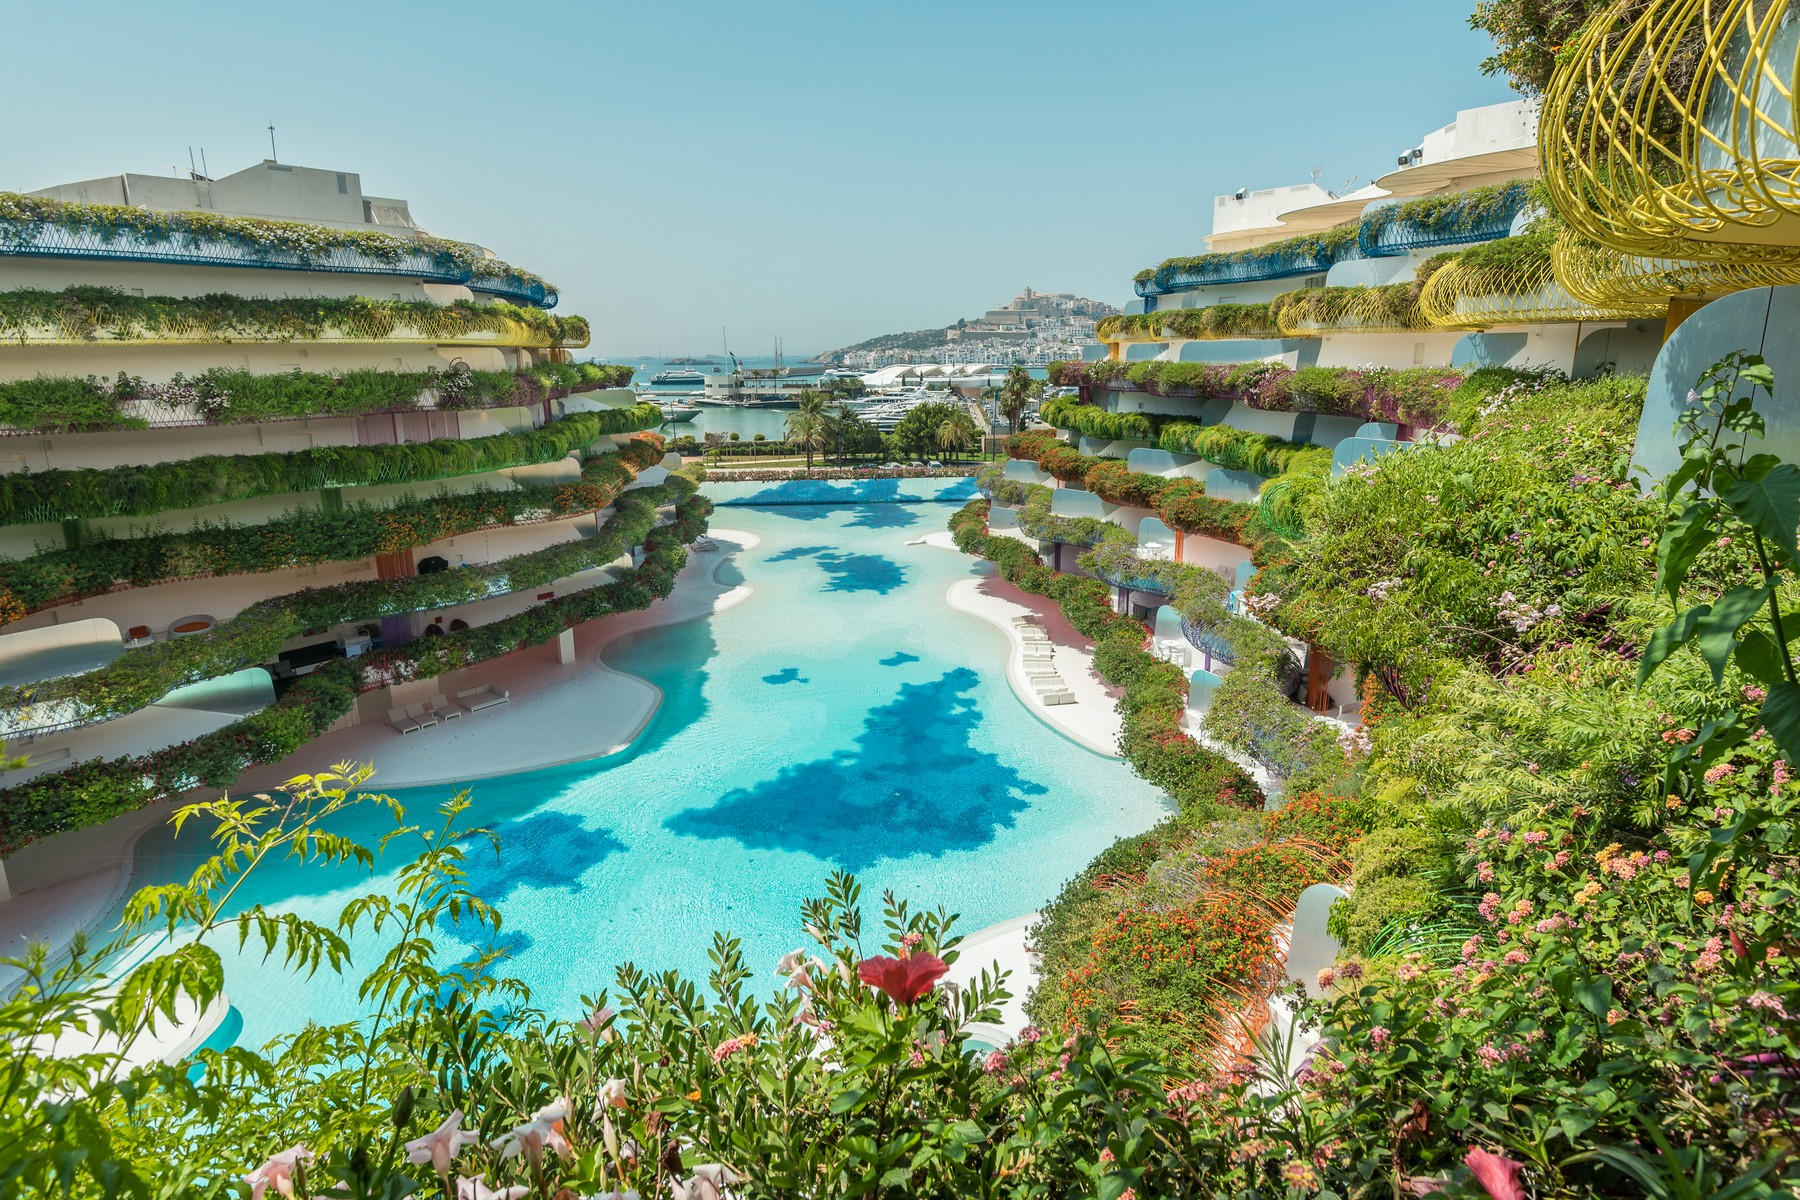 Apartment for Sale at Luxury Apartment In Las Boas Front Line Ibiza, Ibiza, 07800 Spain